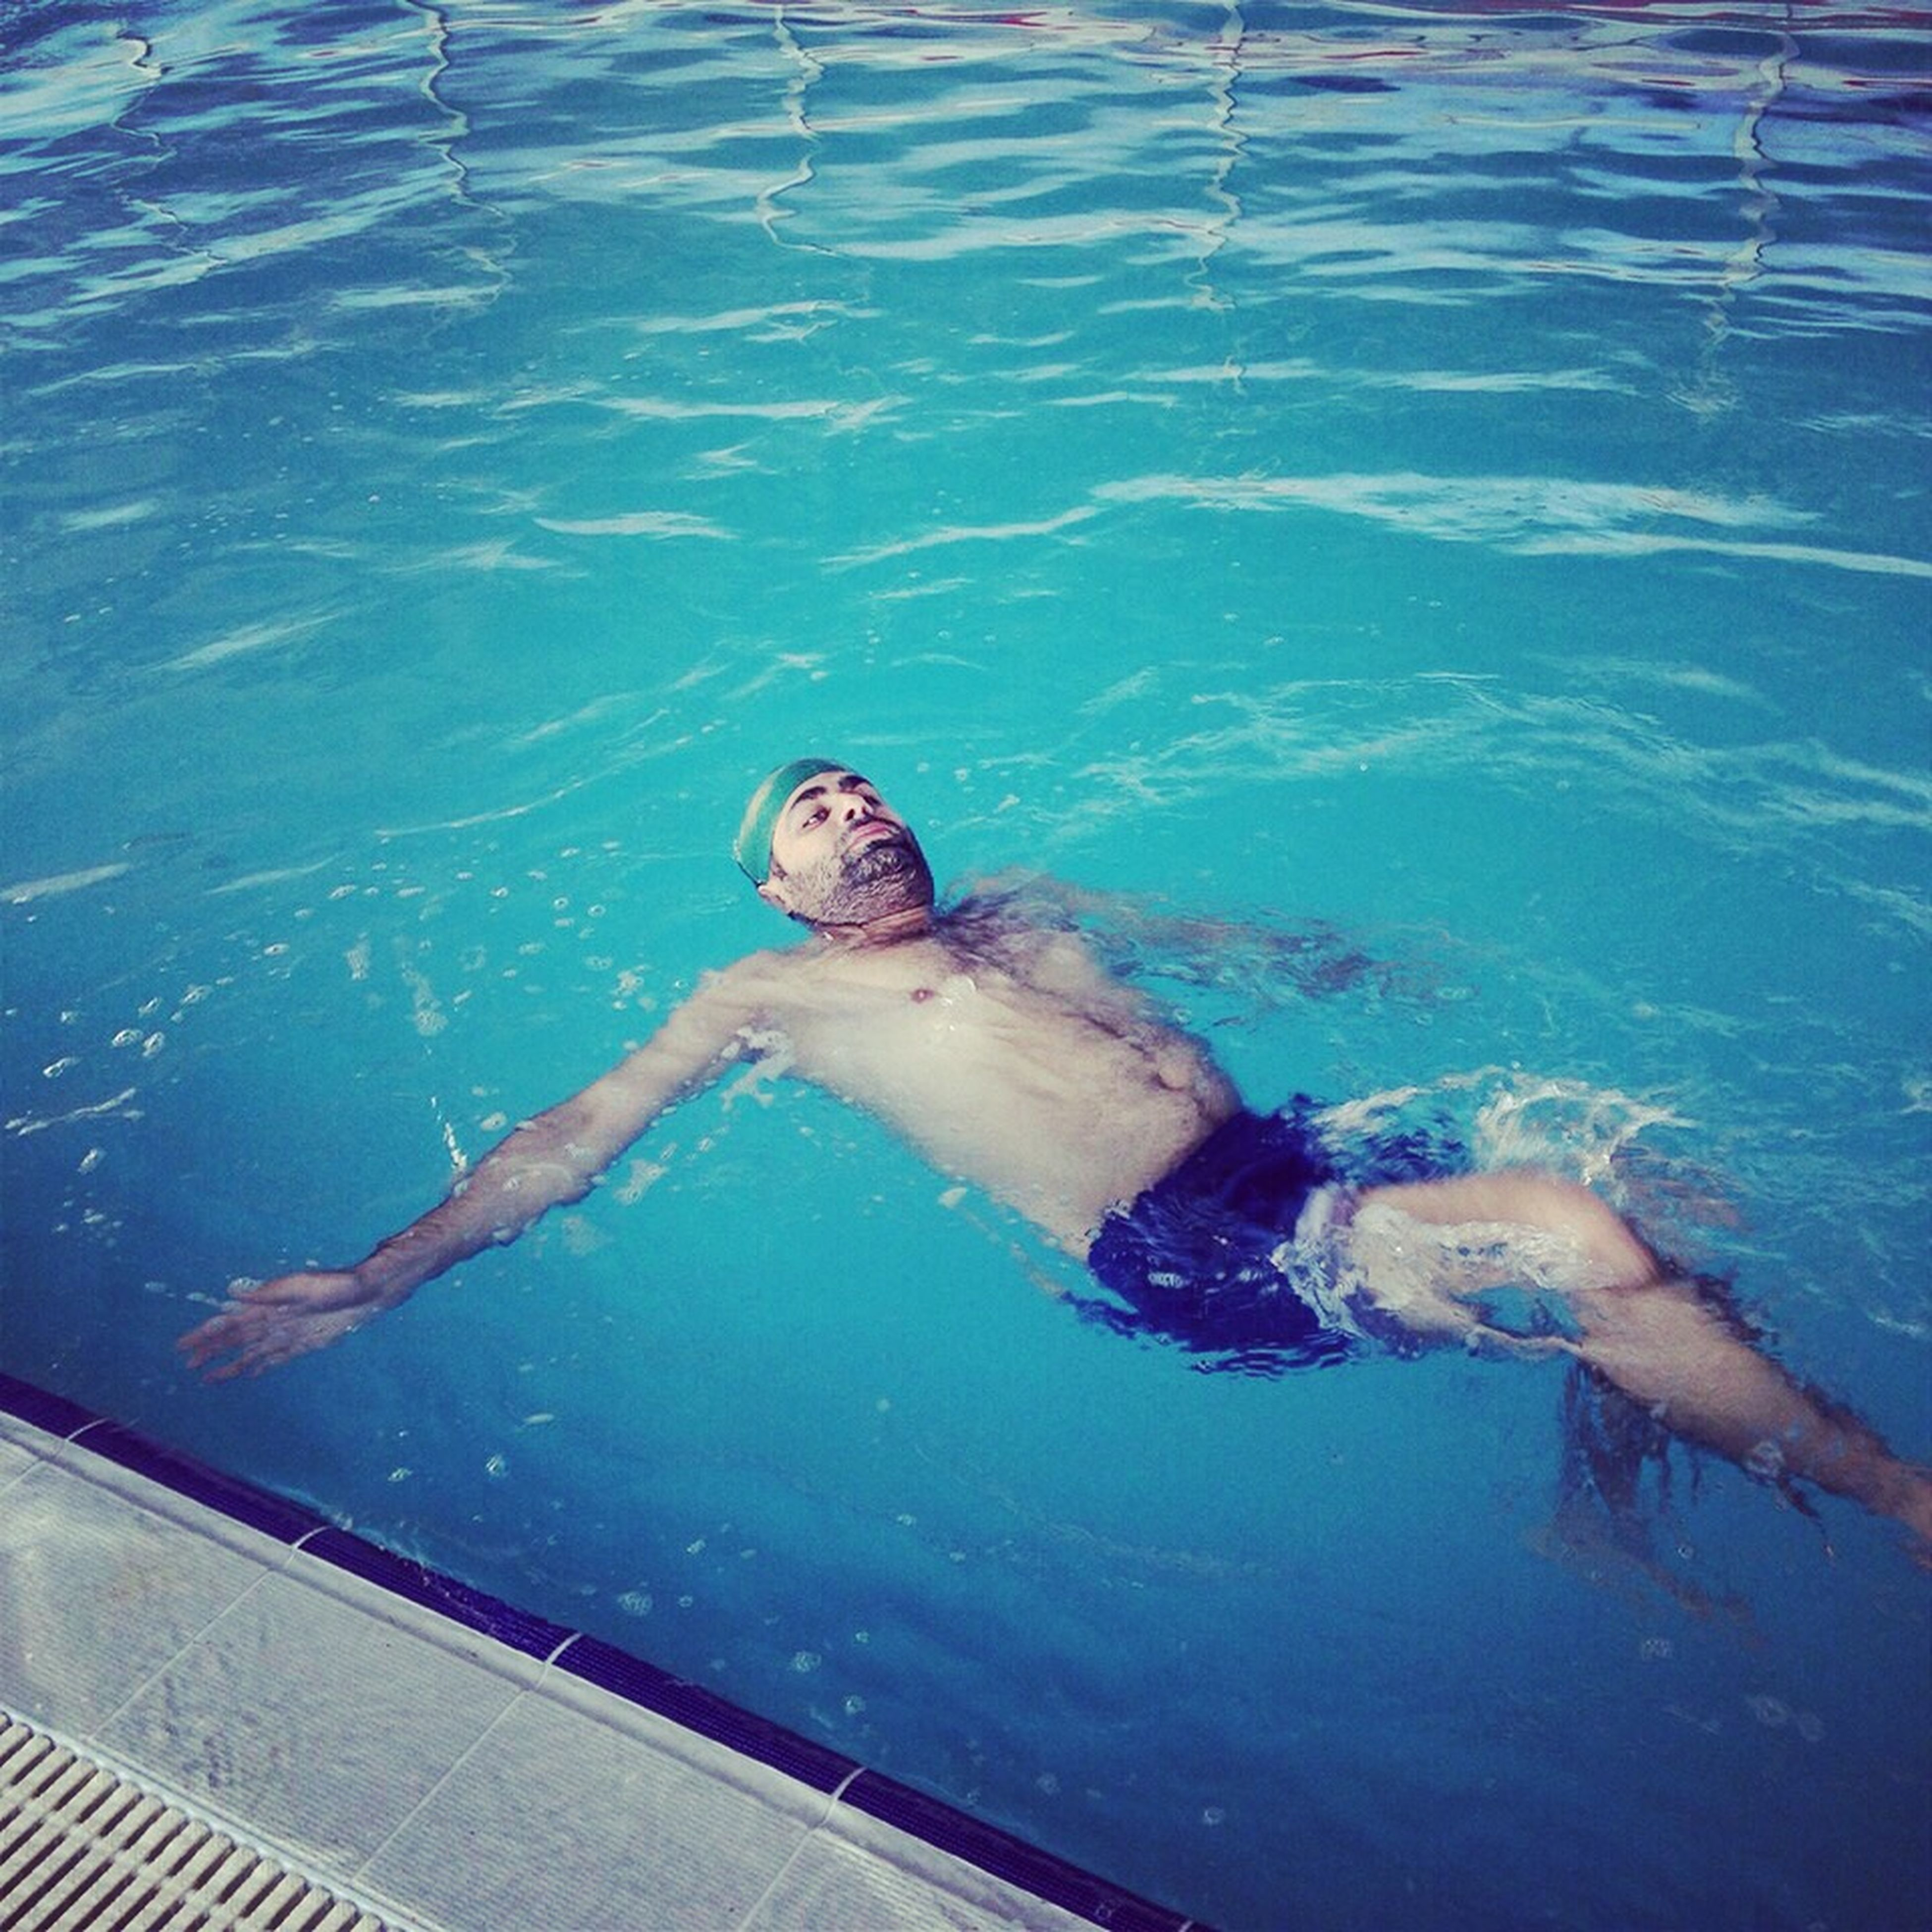 water, swimming pool, high angle view, blue, lifestyles, swimming, leisure activity, sea, full length, low section, relaxation, sitting, turquoise colored, day, men, sunlight, person, one animal